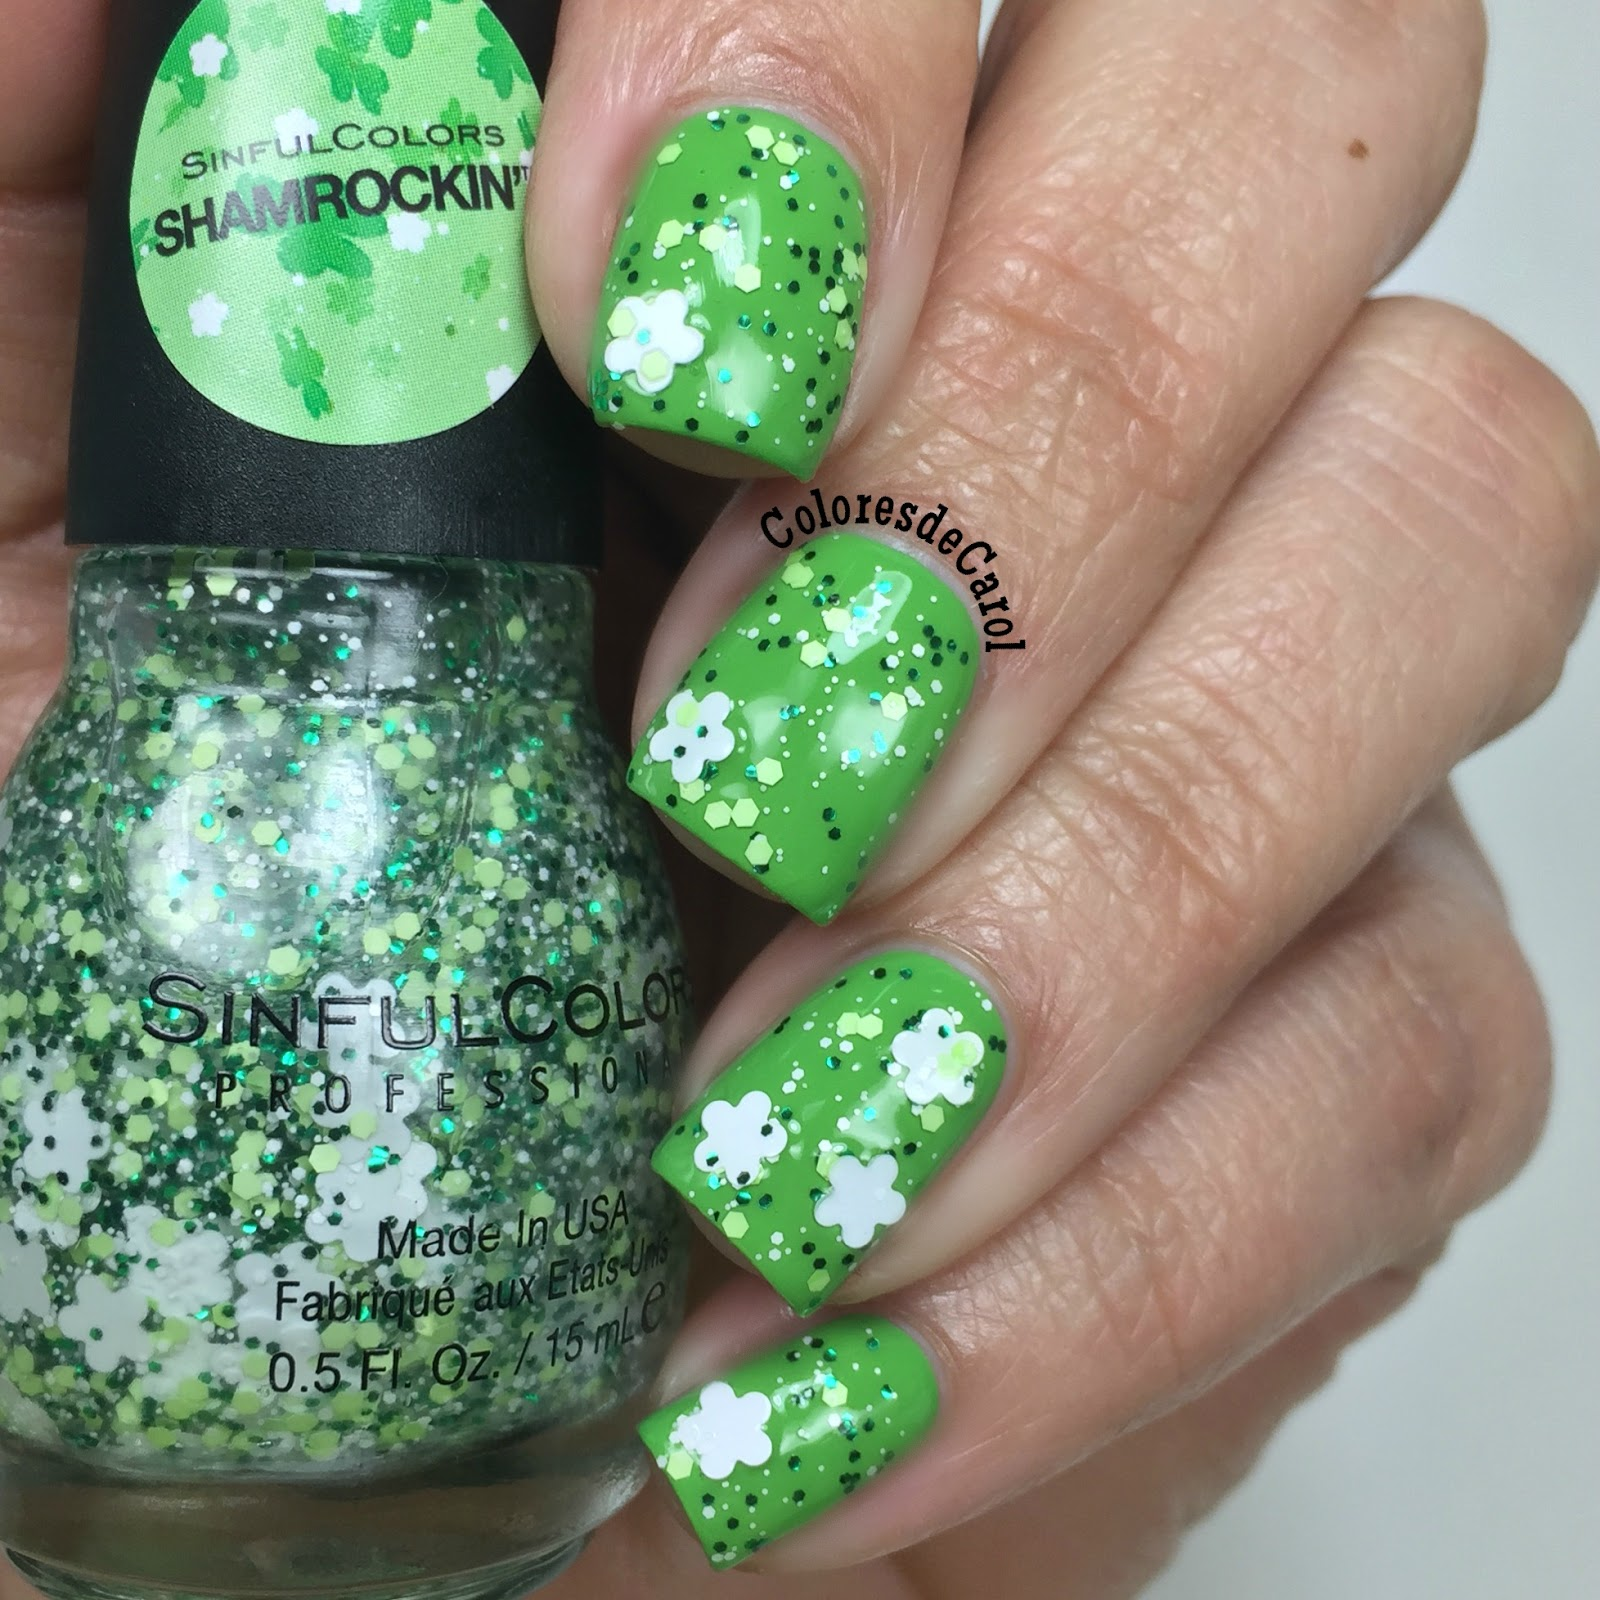 Colores de Carol: Top 8 Green Nail Polishes for St. Patrick\'s Day